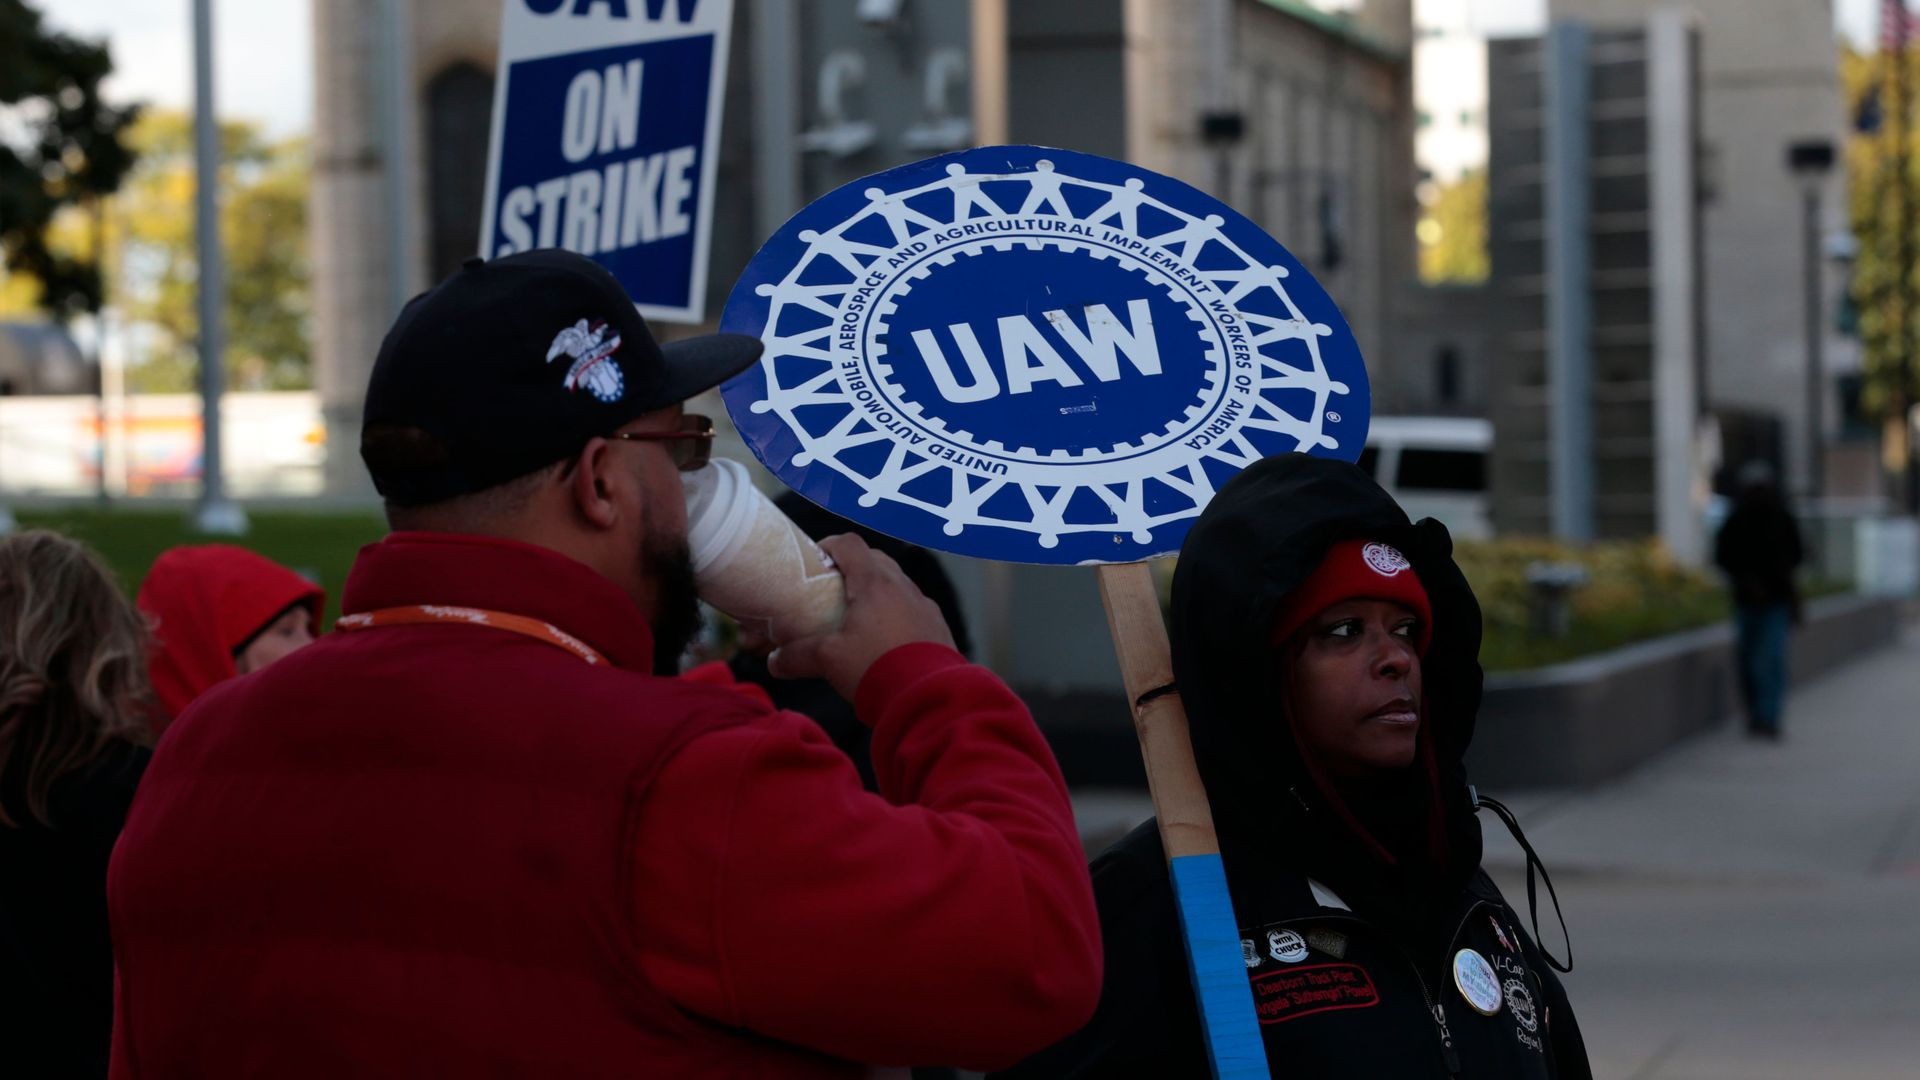 Members of the United Auto Workers picked outside of a building holding strike signs.